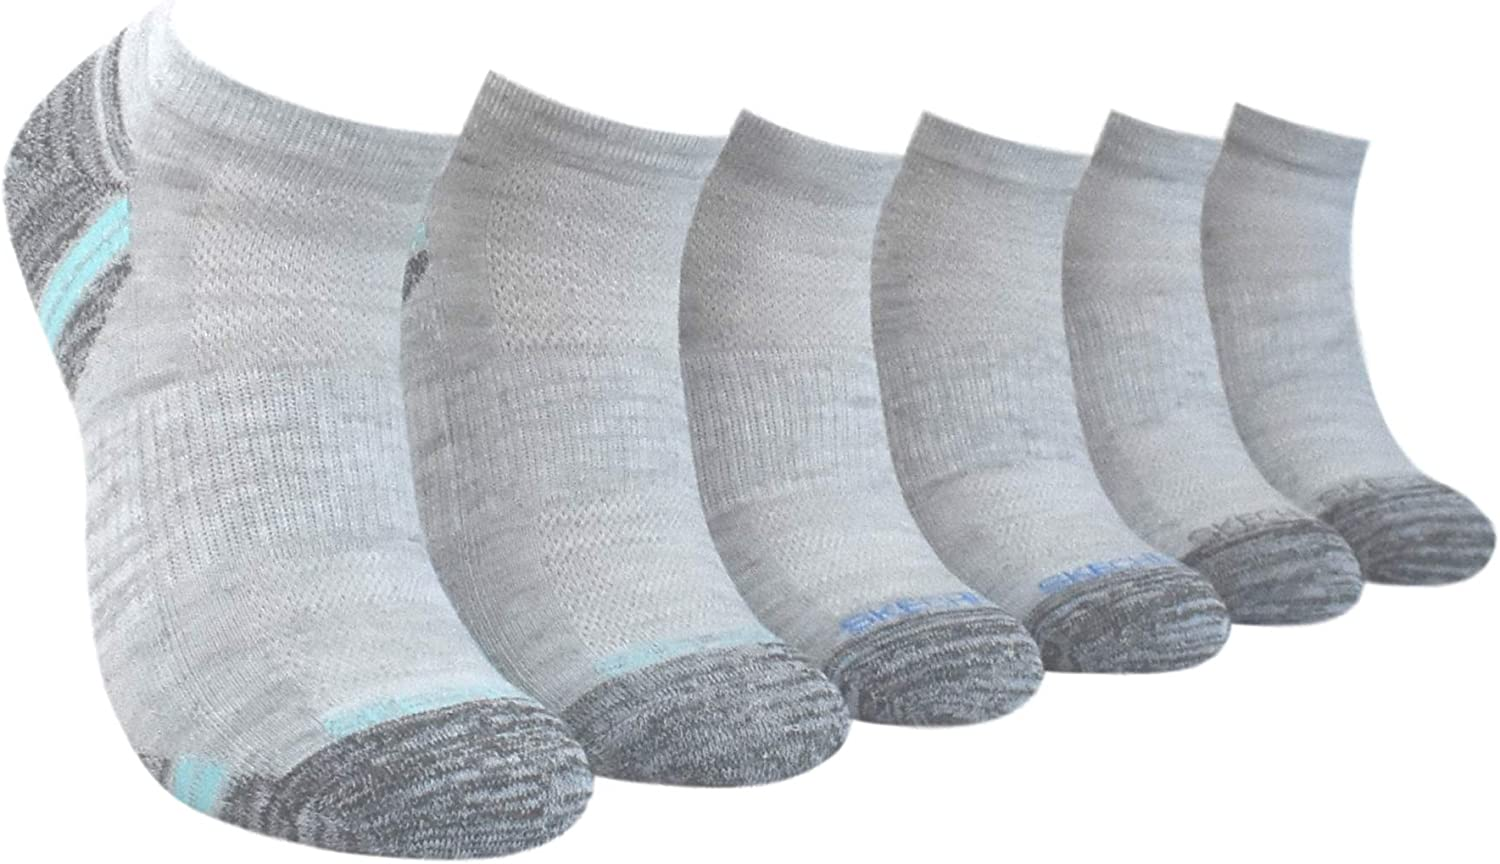 Skechers Active Womens 6 Pack Cushioned Low Cut Socks Sock Size 9-11 S108228